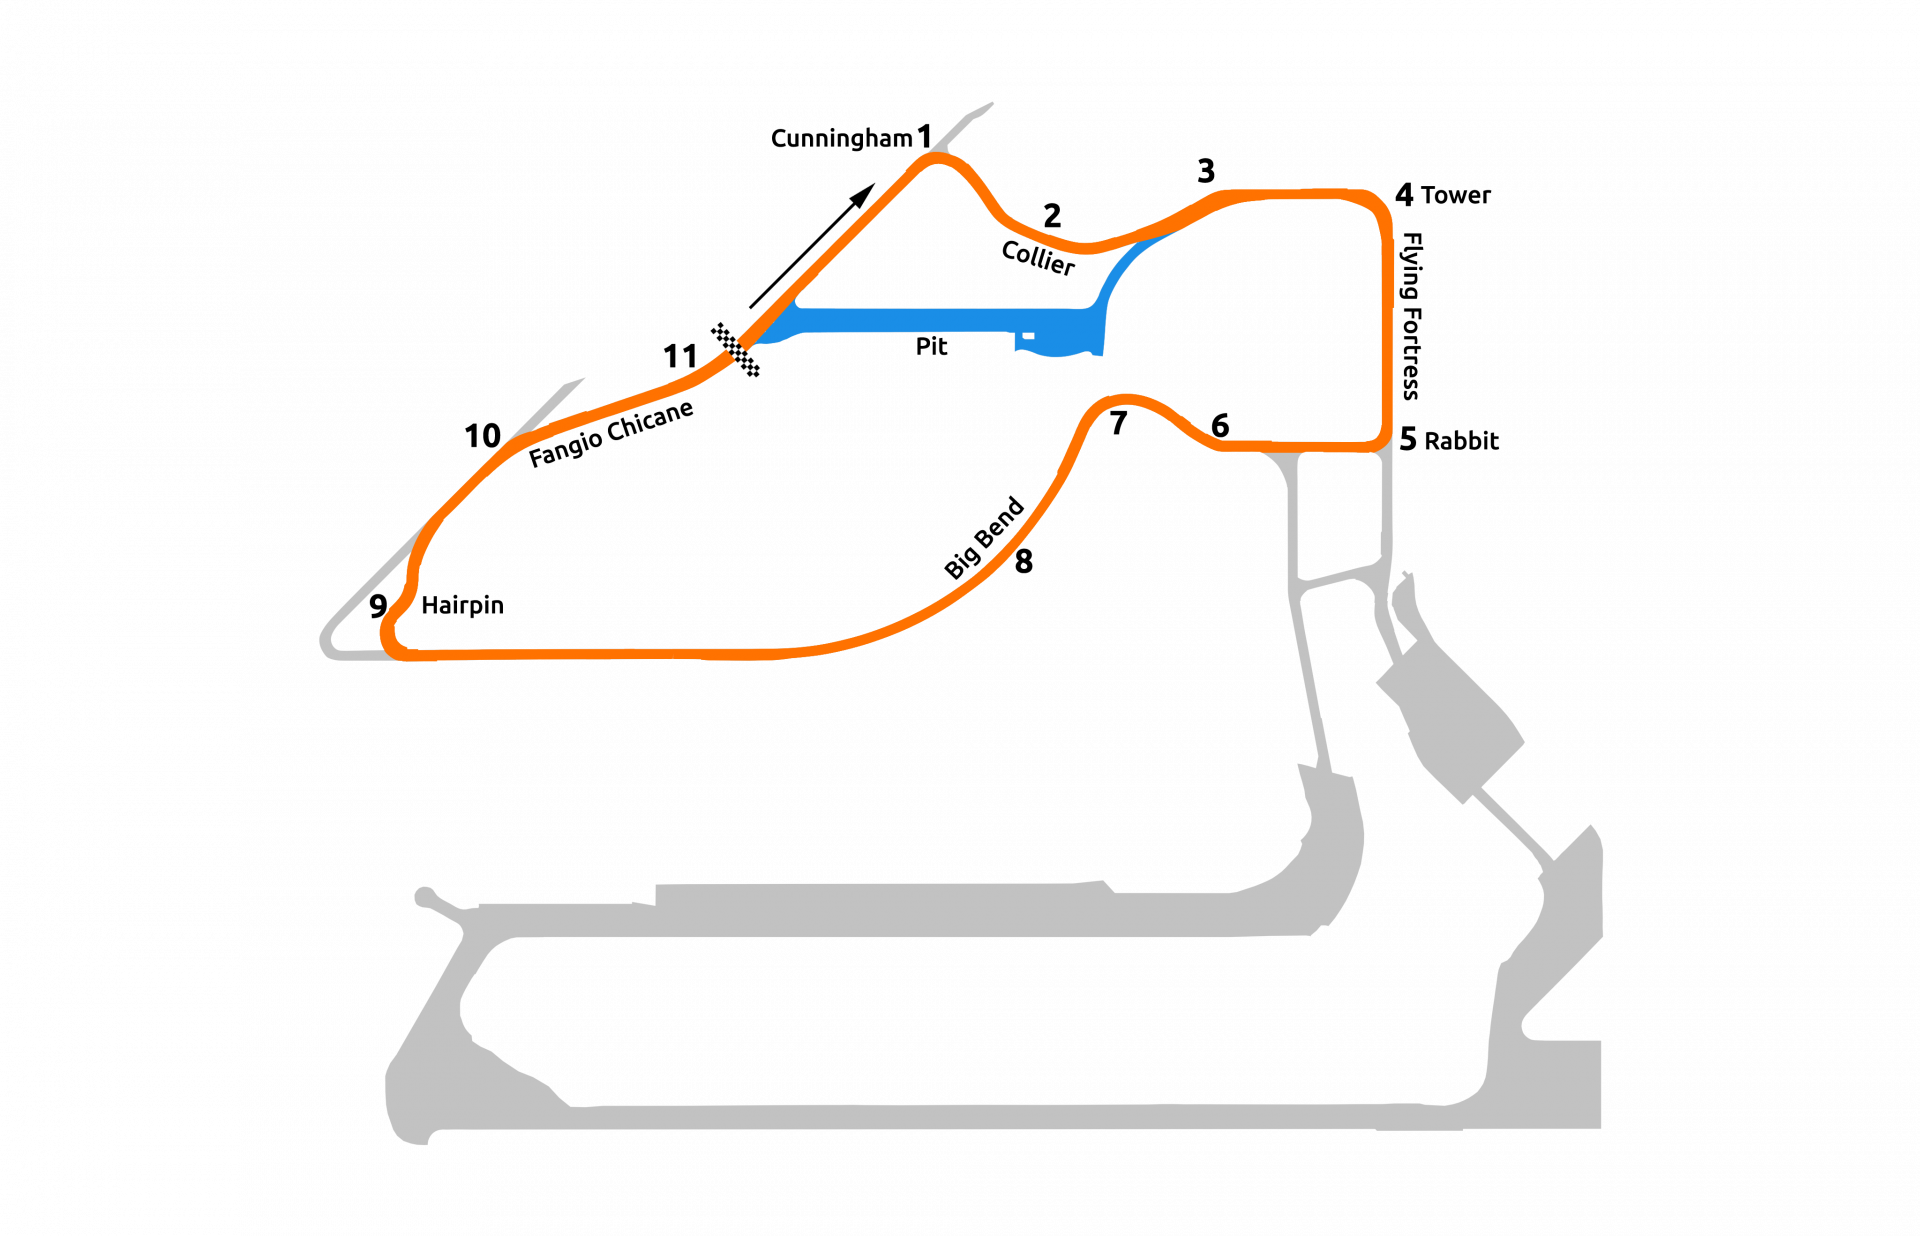 rFactor 2 July roadmap Sebring Johnson Clube layout